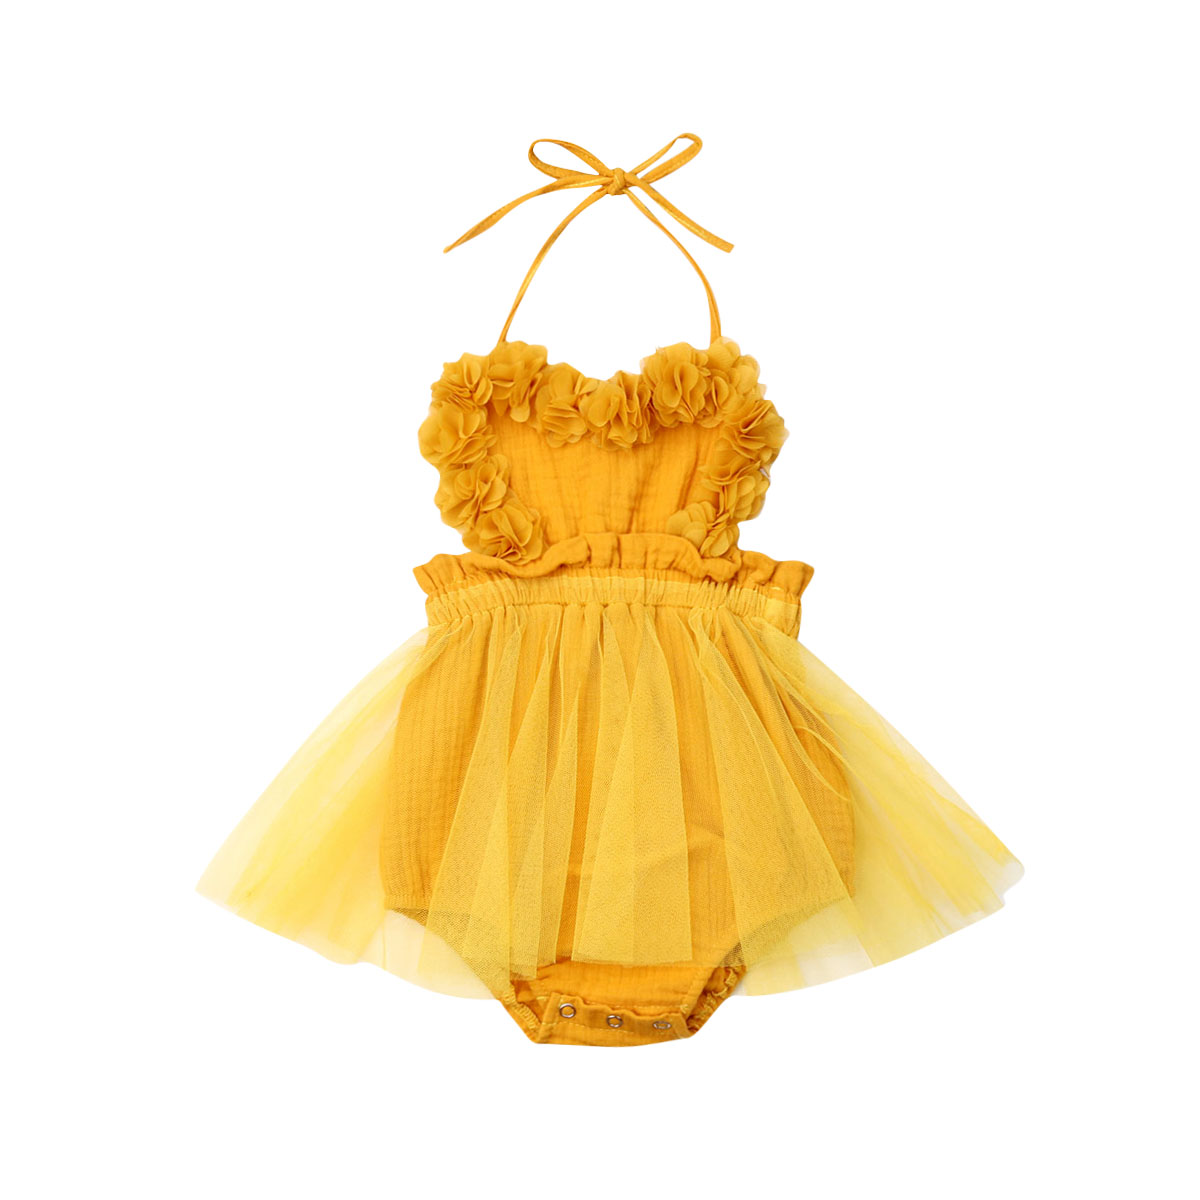 0-18M Newborn Baby Girl Tulle Romper Dress Yellow Solid Lace Sleeveless Belt Jumpsuit Outfits Summer Clothes US Stock